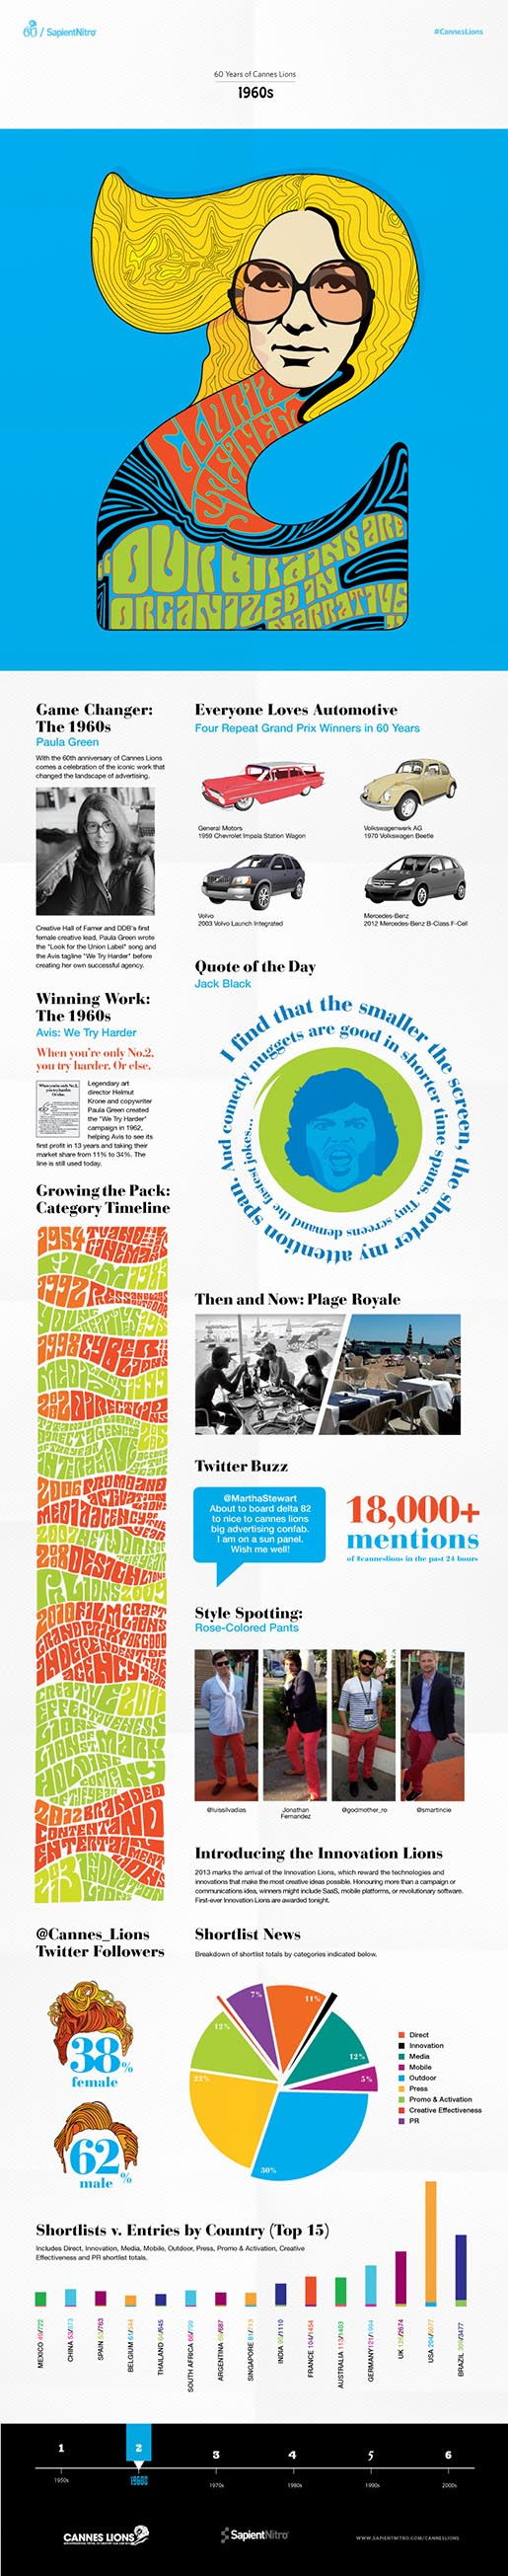 Cannes Lions Infographic 2